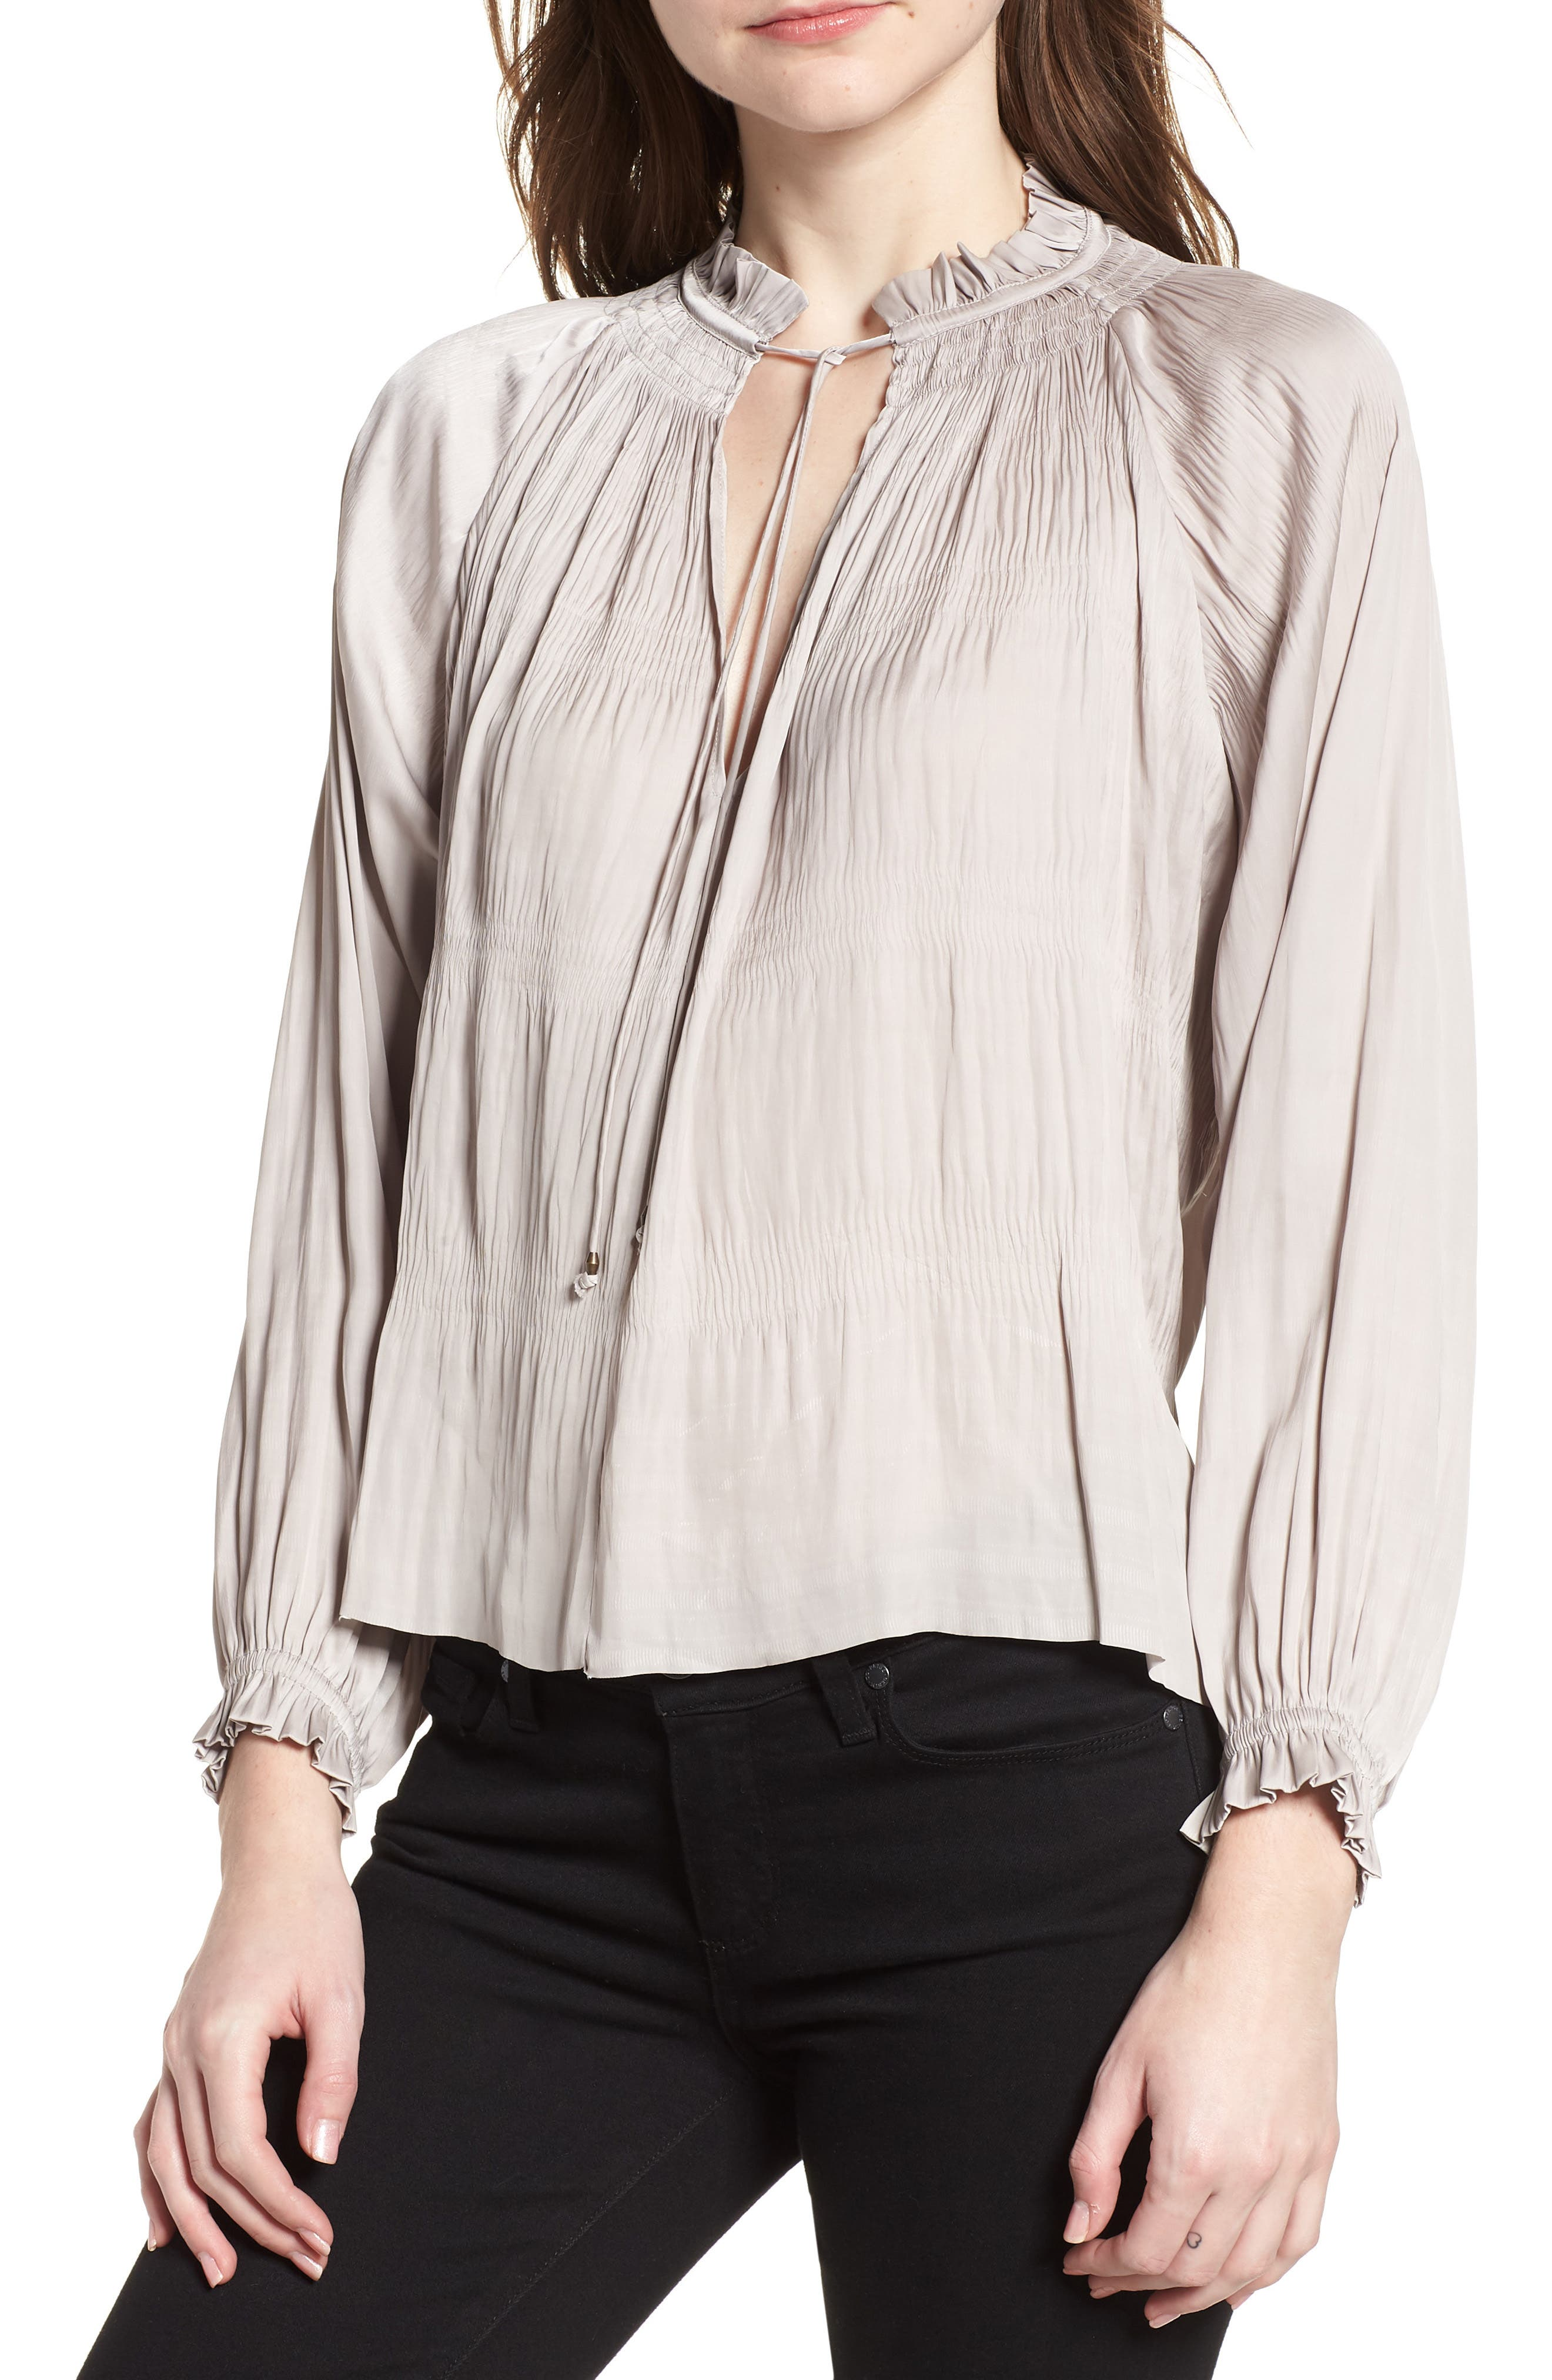 Brooklyn Blouse,                         Main,                         color, Light Grey